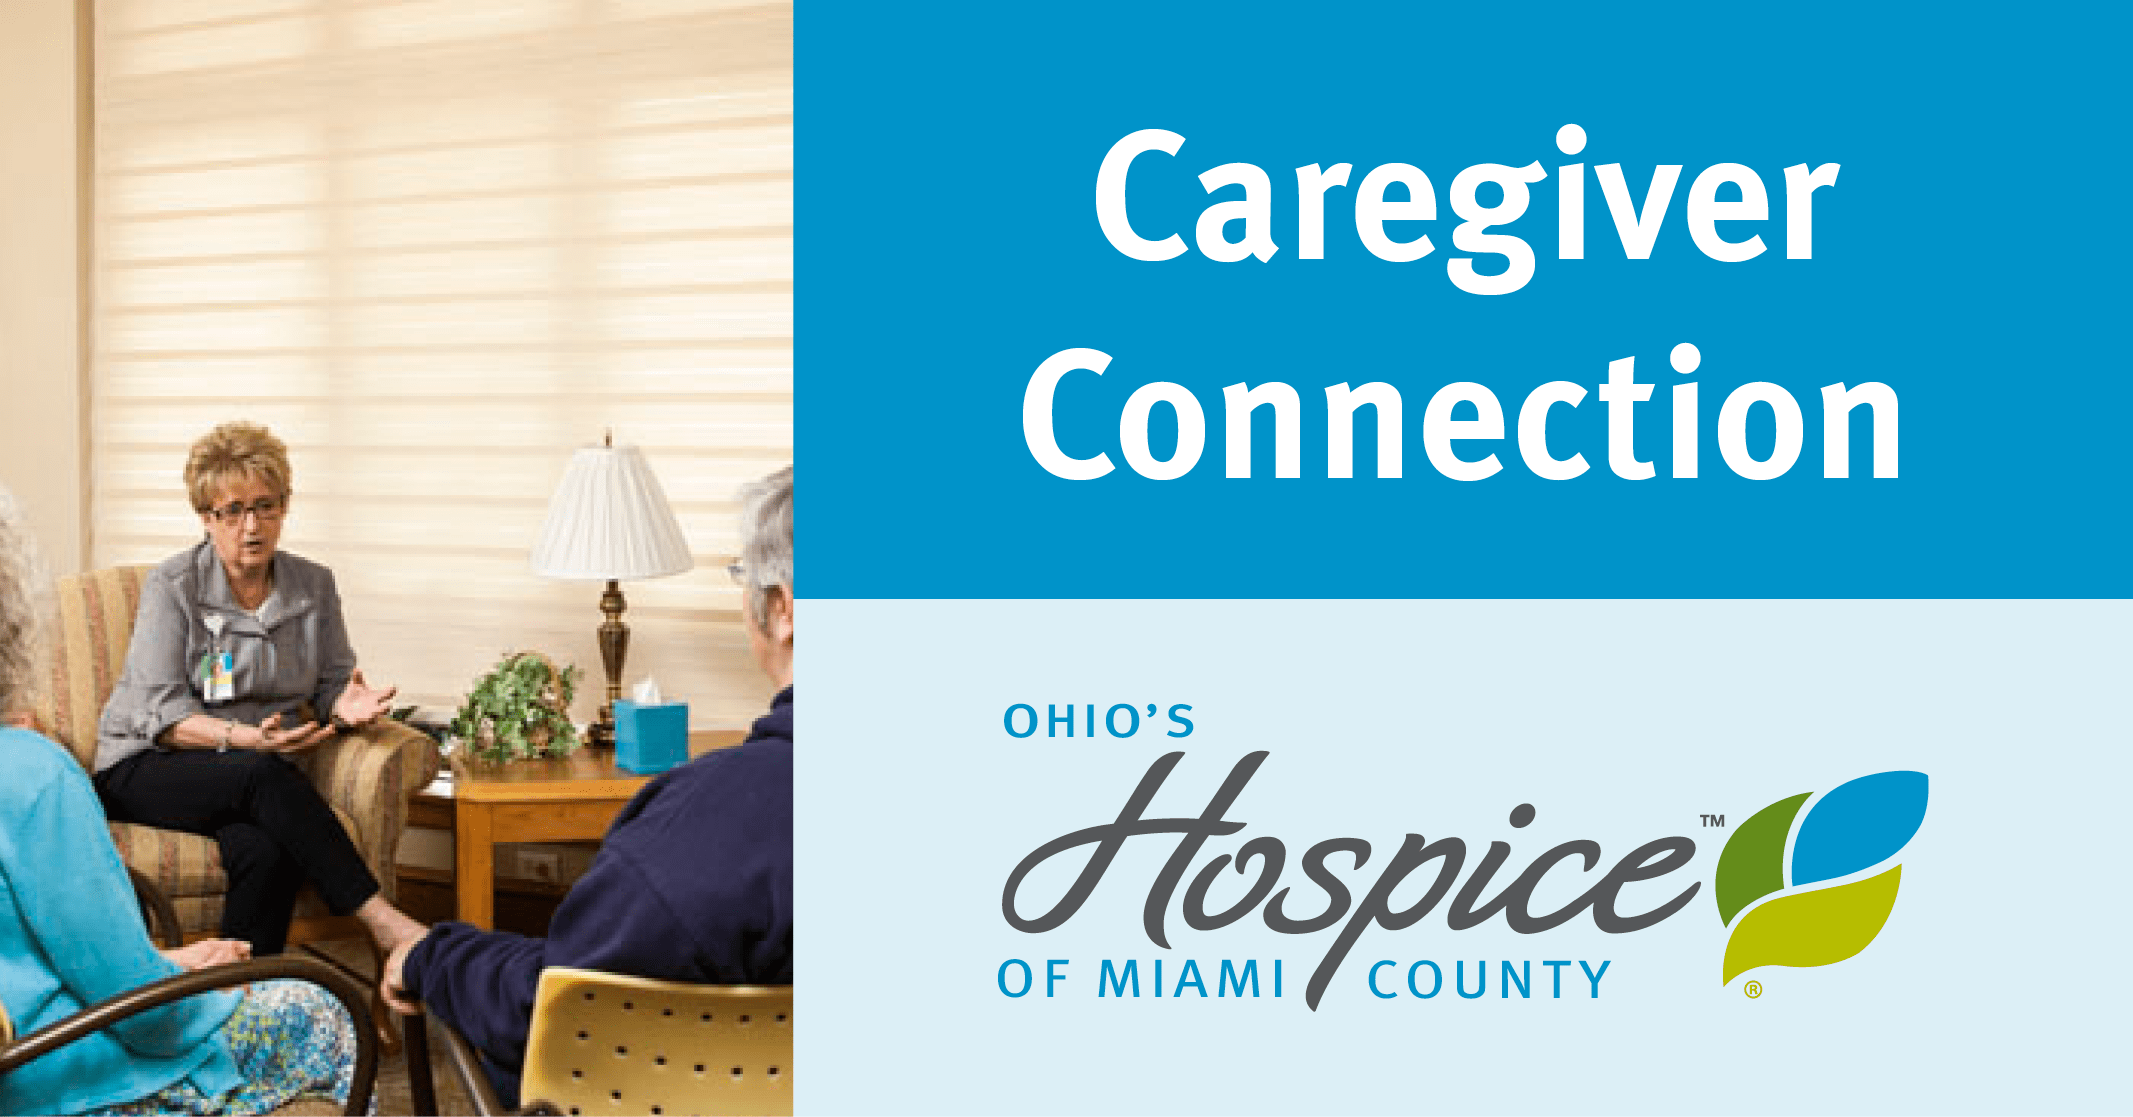 Caregiver Connection Program Offers Support